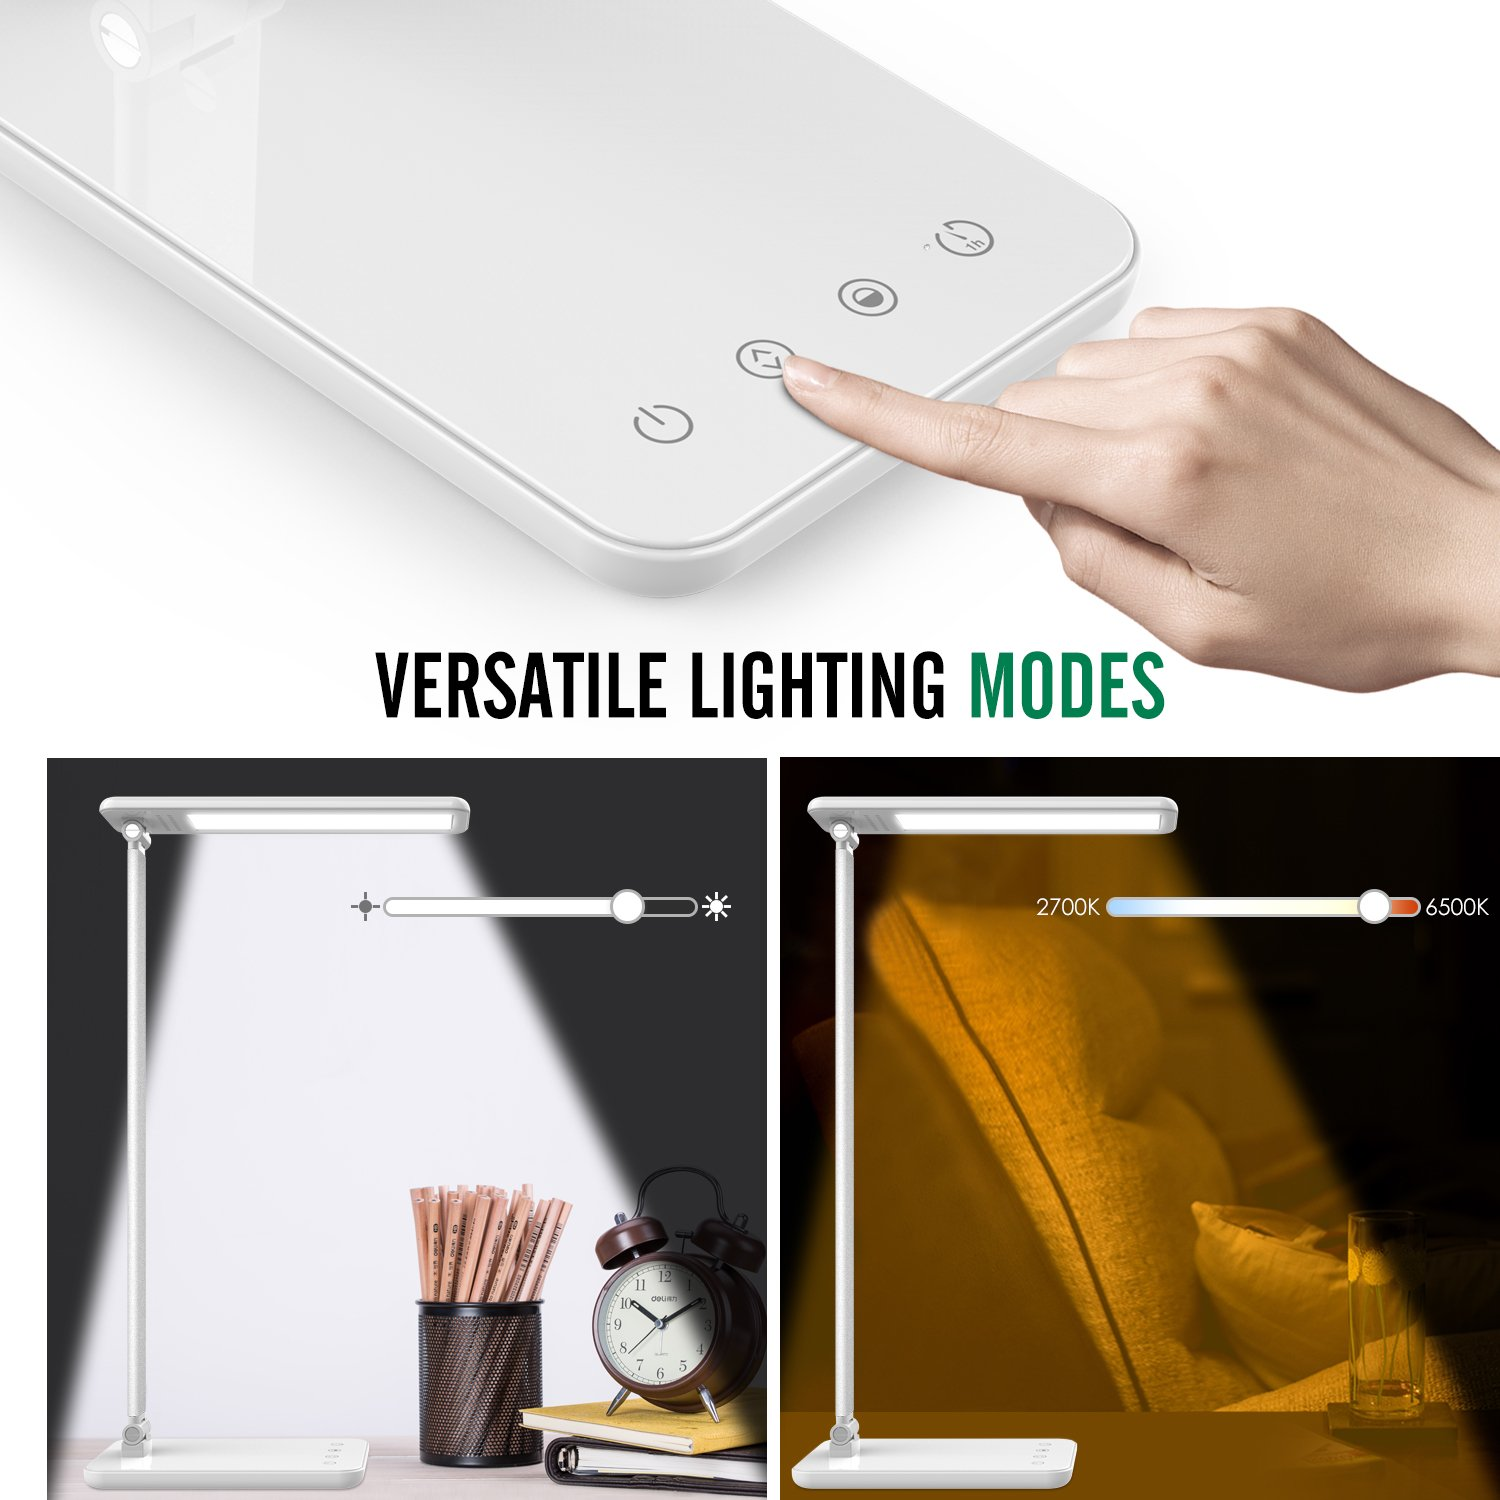 MoKo Dimmable LED Desk Lamp, 8W Touch-Sensitive Control Eye-Caring Working / Reading Table Lamp, Continuously Dimmable Brightness & Color Temperature, 1-Hour Auto Timer, Adjustable Arm & Head - WHITE by MoKo (Image #2)